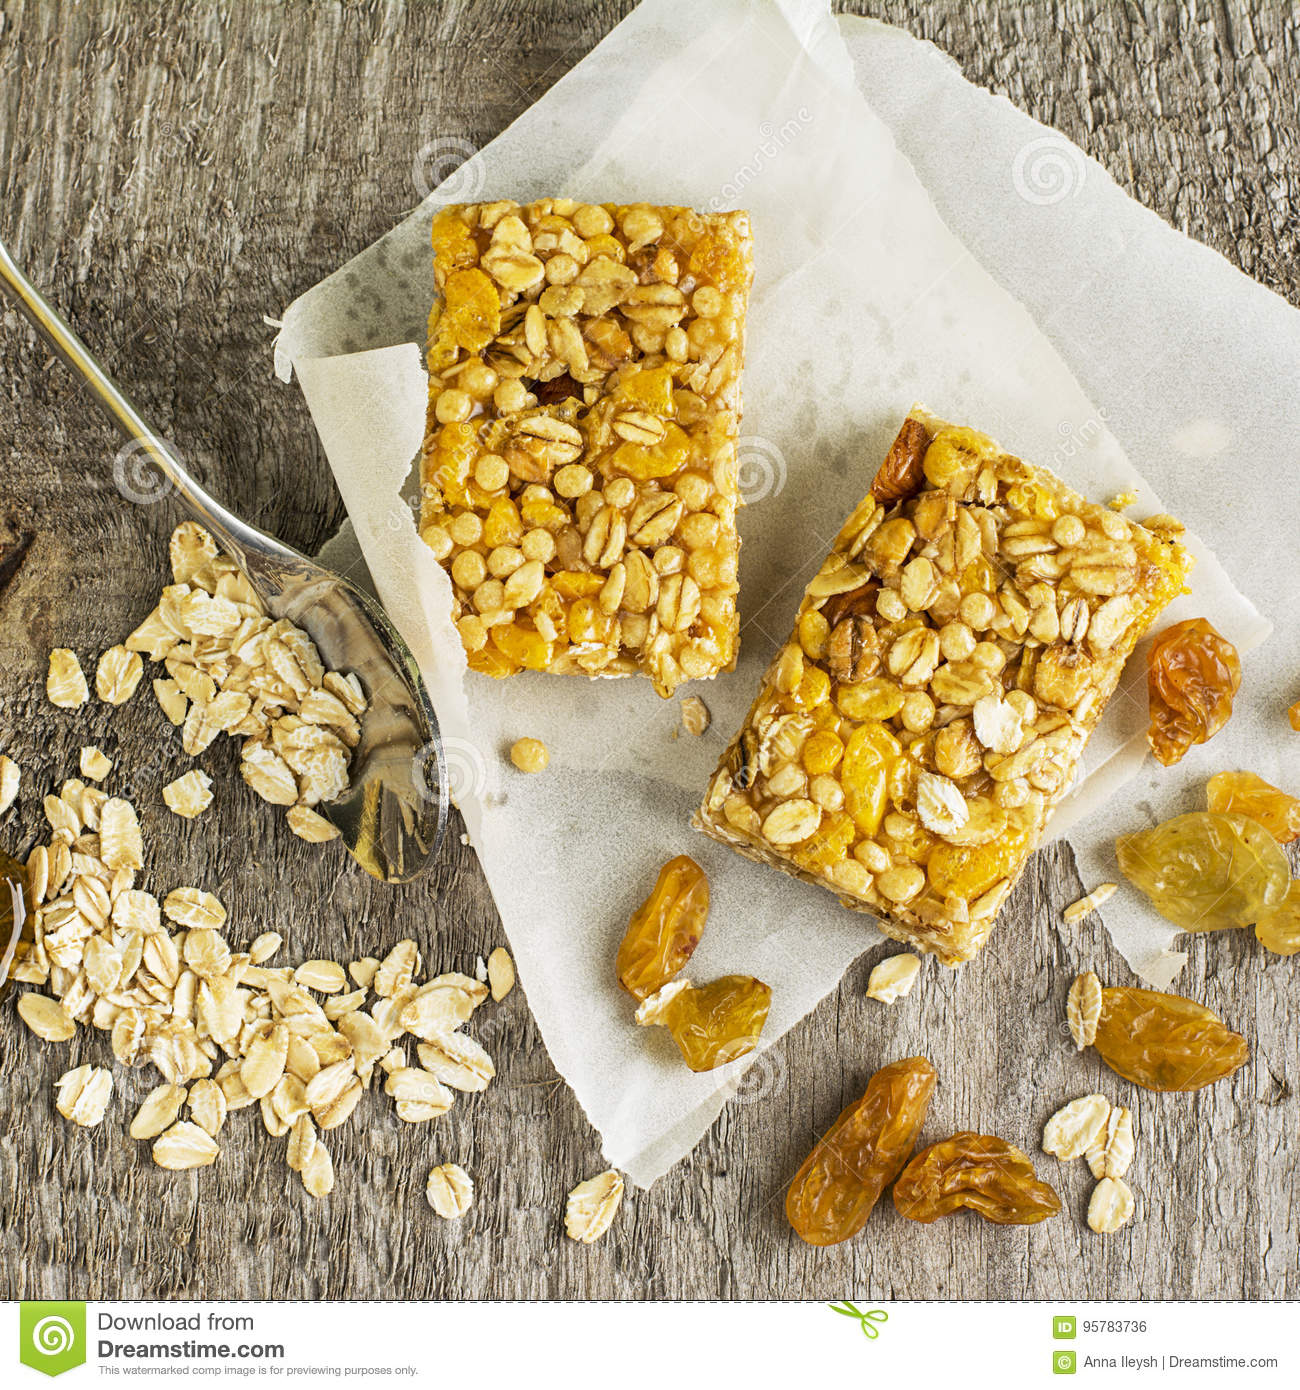 Organic oat cereal bars with honey and golden raisins on a simple download organic oat cereal bars with honey and golden raisins on a simple wooden background ccuart Image collections